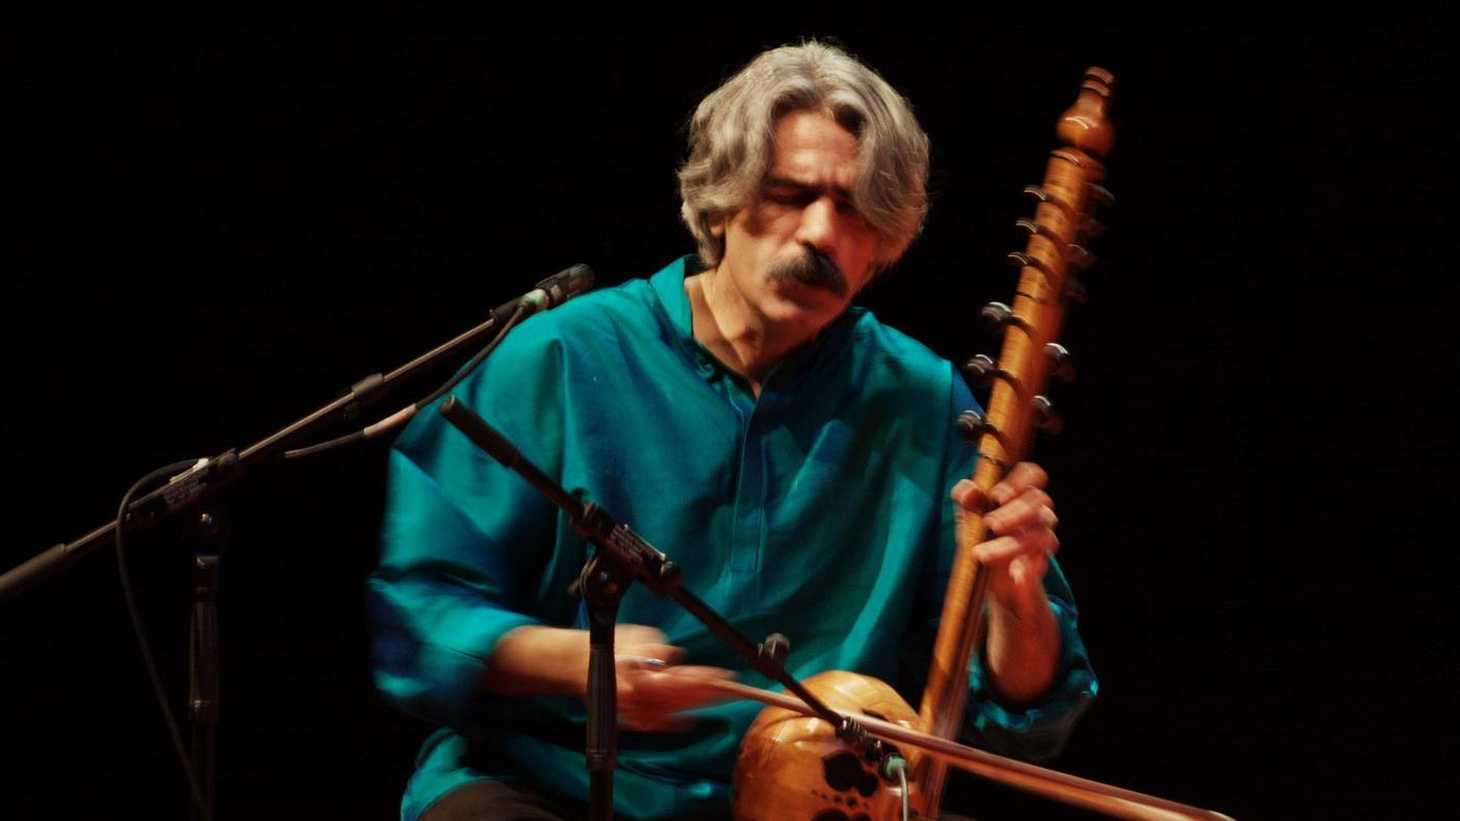 A master musician in the classical Persian tradition, Kayhan Kalhor has found international success as a member of Yo-Yo Ma's Silk Road Ensemble and has recently composed...